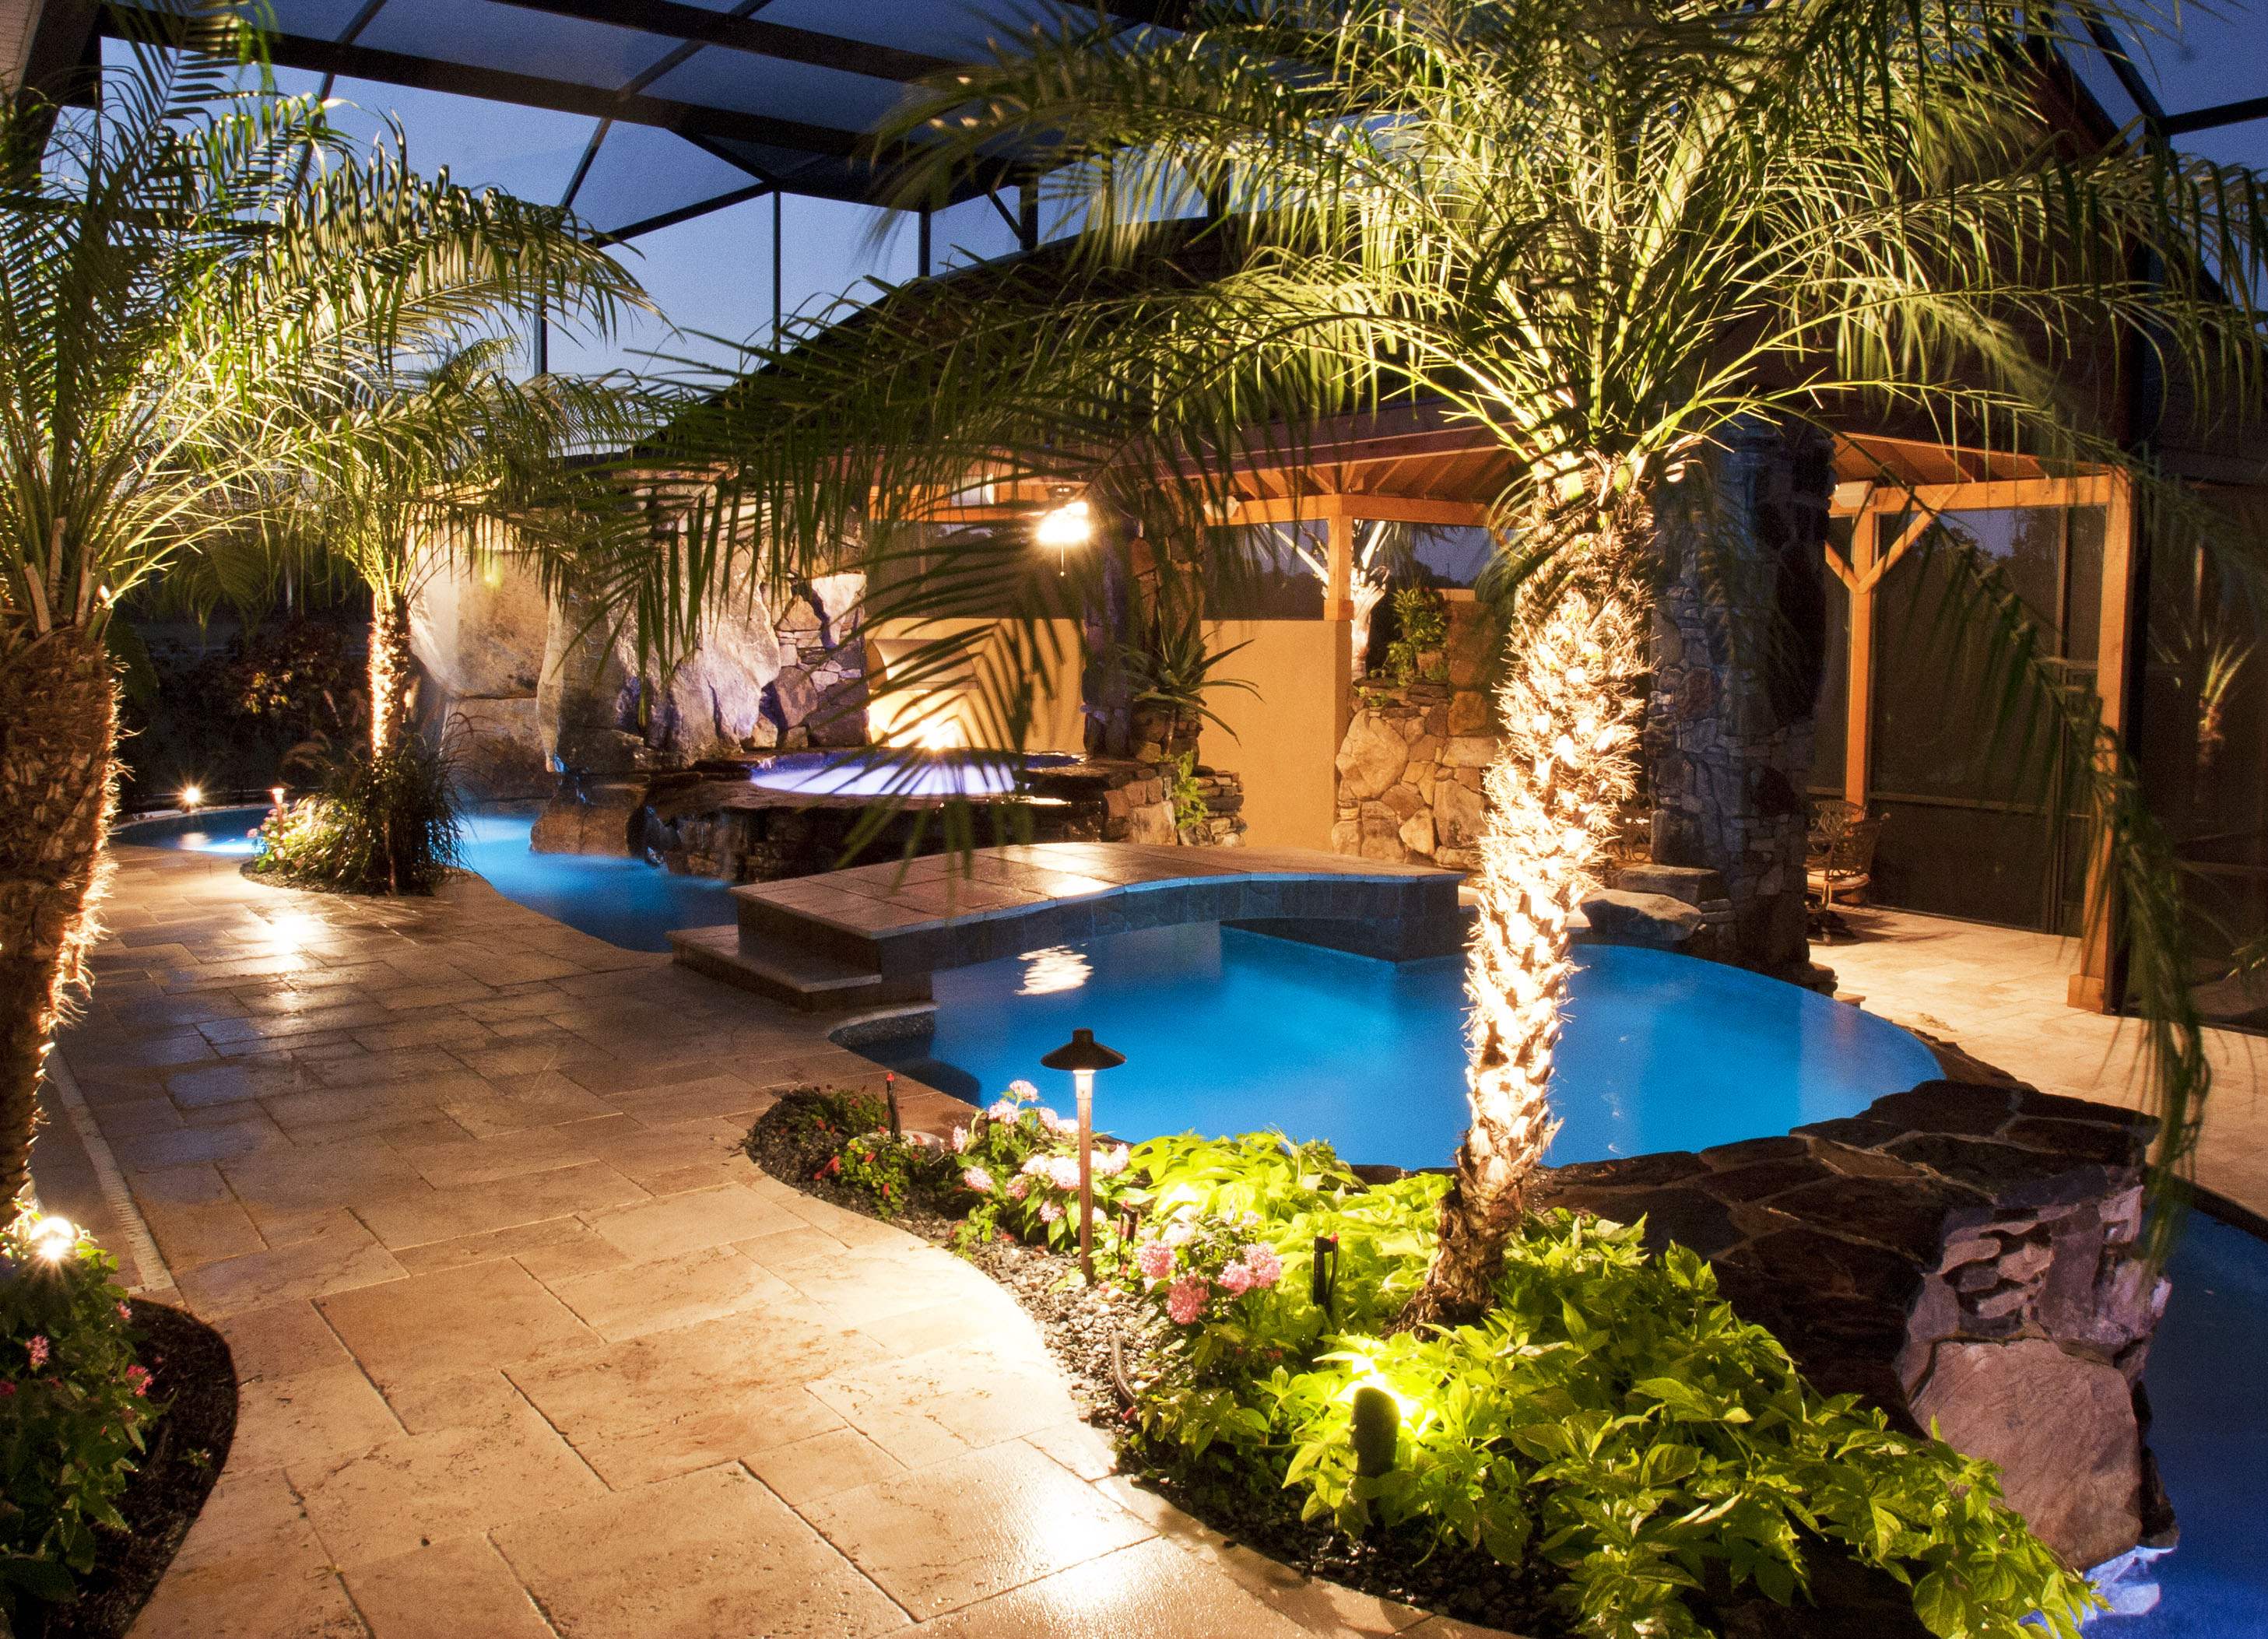 swimming pool and spa with outdoor kitchen bar and waterfalls - Outdoor Backyard Pools